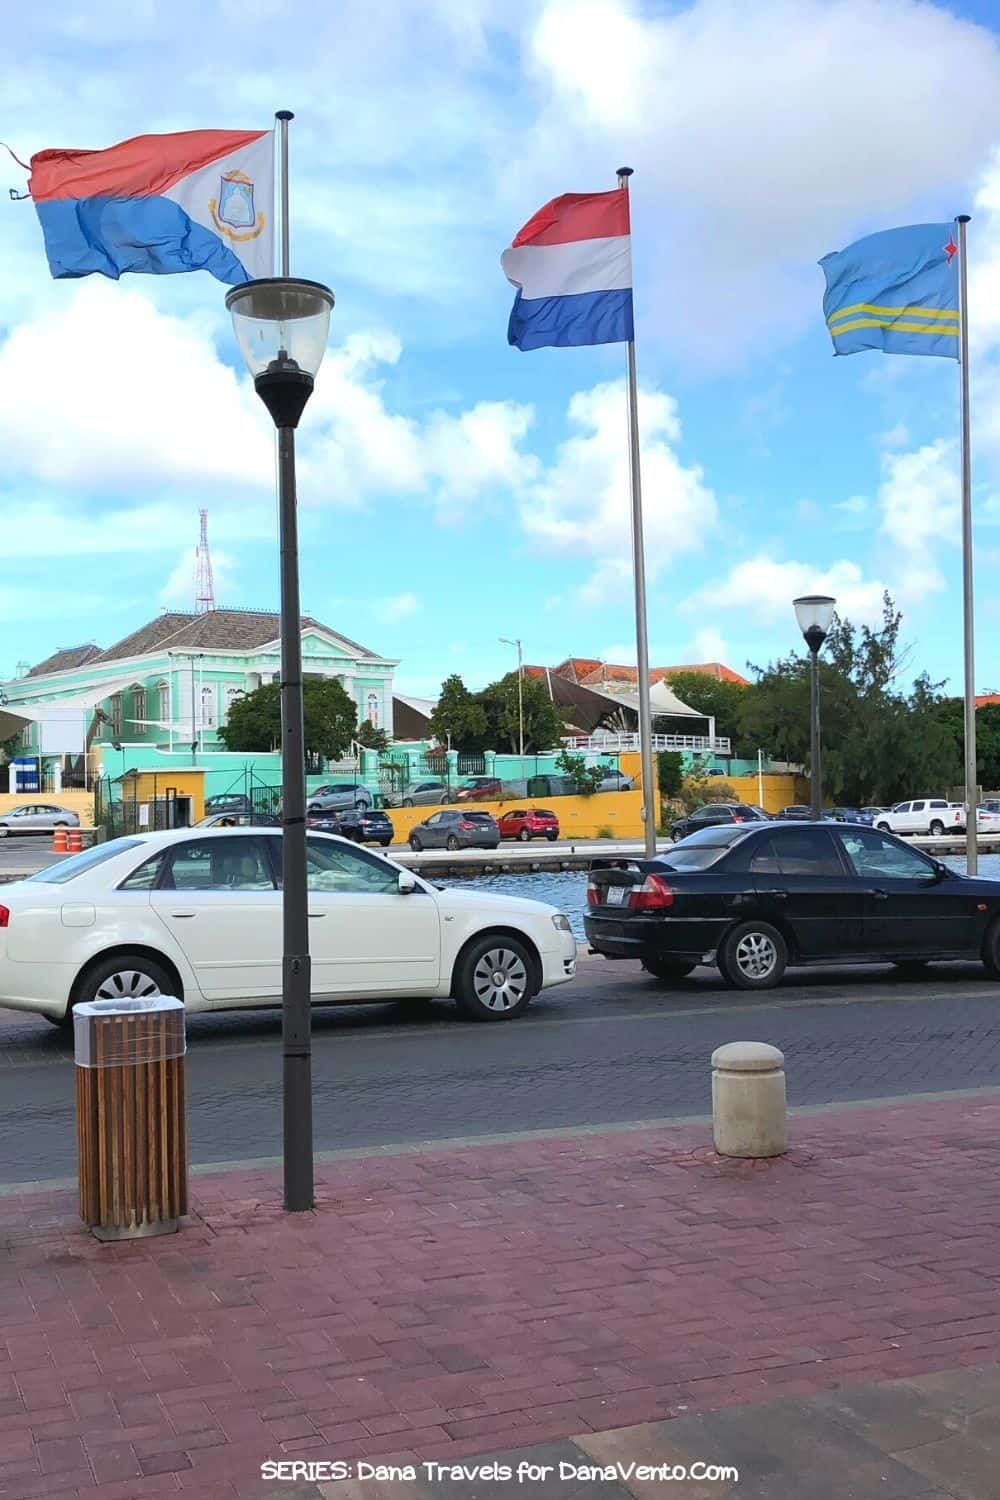 Willemstad Flags: Interesting things to experience in Willemstad Curacao